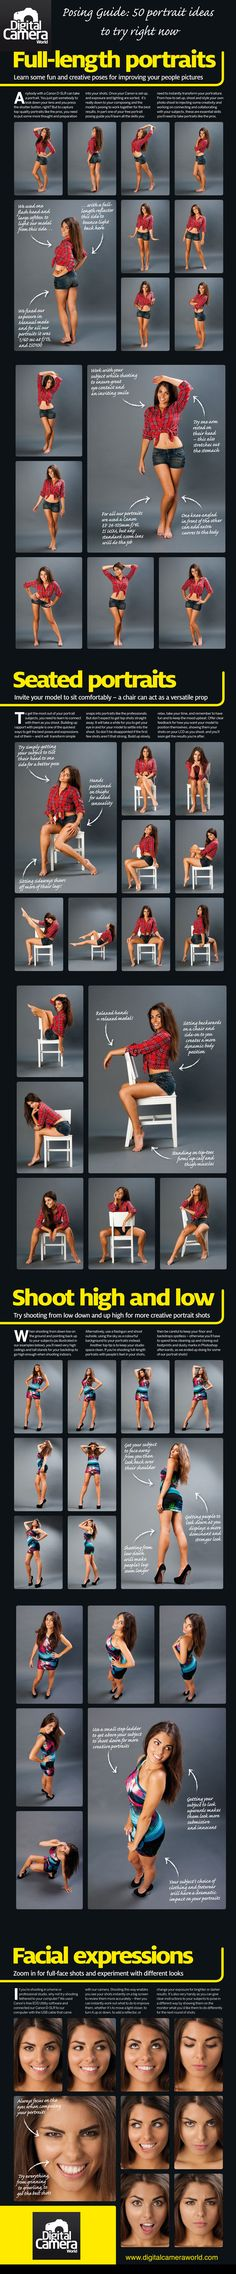 Most people don't know how to pose when it comes to portrait pictures and you see many amateur and unprofessional models because they don't look confident in their pictures. This infographic DigitalCameraWorld goes through 50 different poses which will li Photography Tutorials, Photography Tips, Portrait Photography, Photography Business, Fashion Photography, Senior Photography, Photography Backdrops, Digital Photography, Photography Ideas For Teens